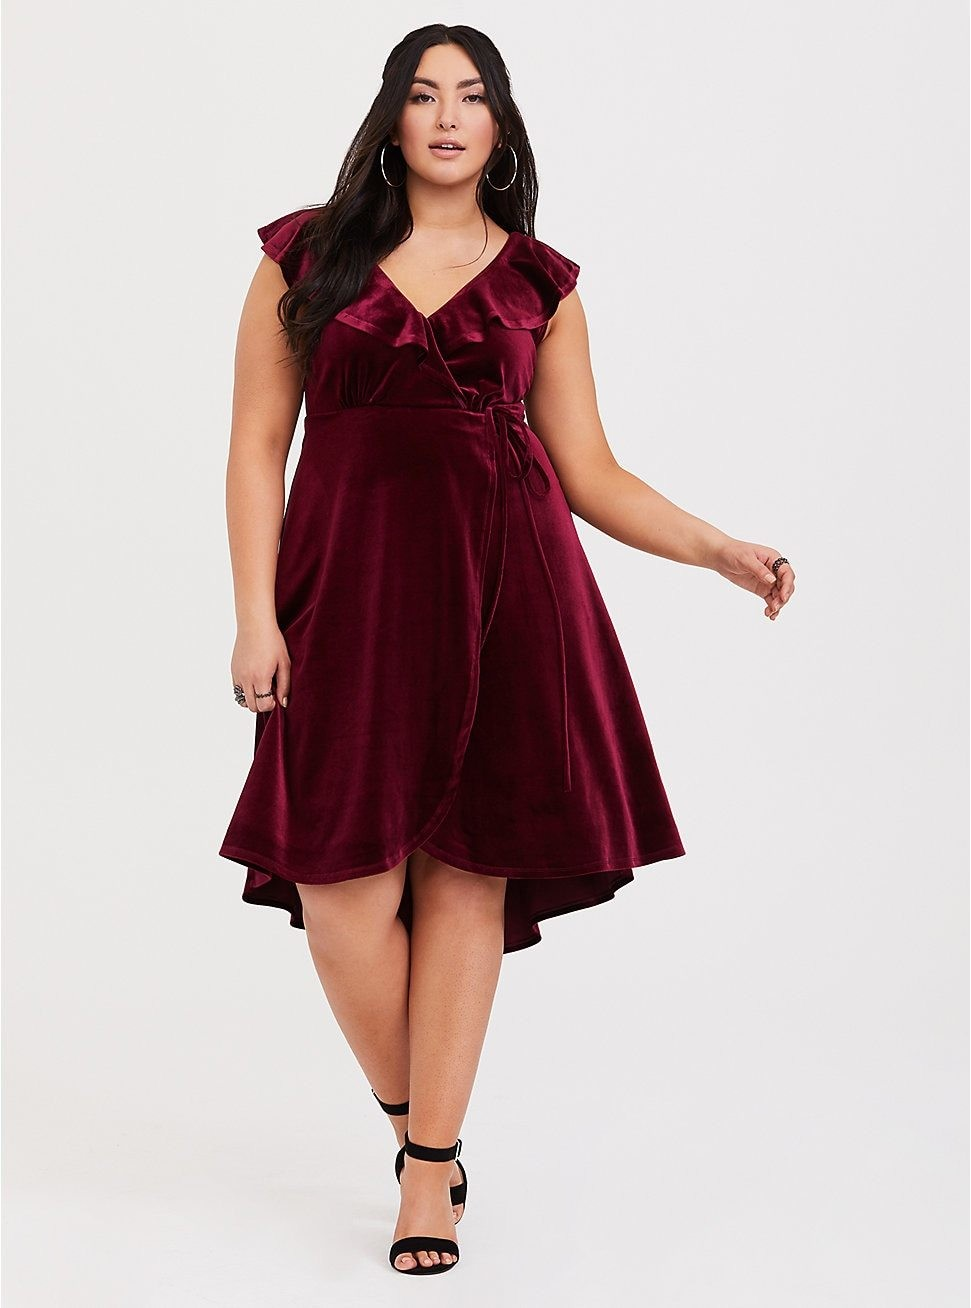 172b051a501 Best Plus Size Formal Dresses For 2019 - Things We Love - Livingly